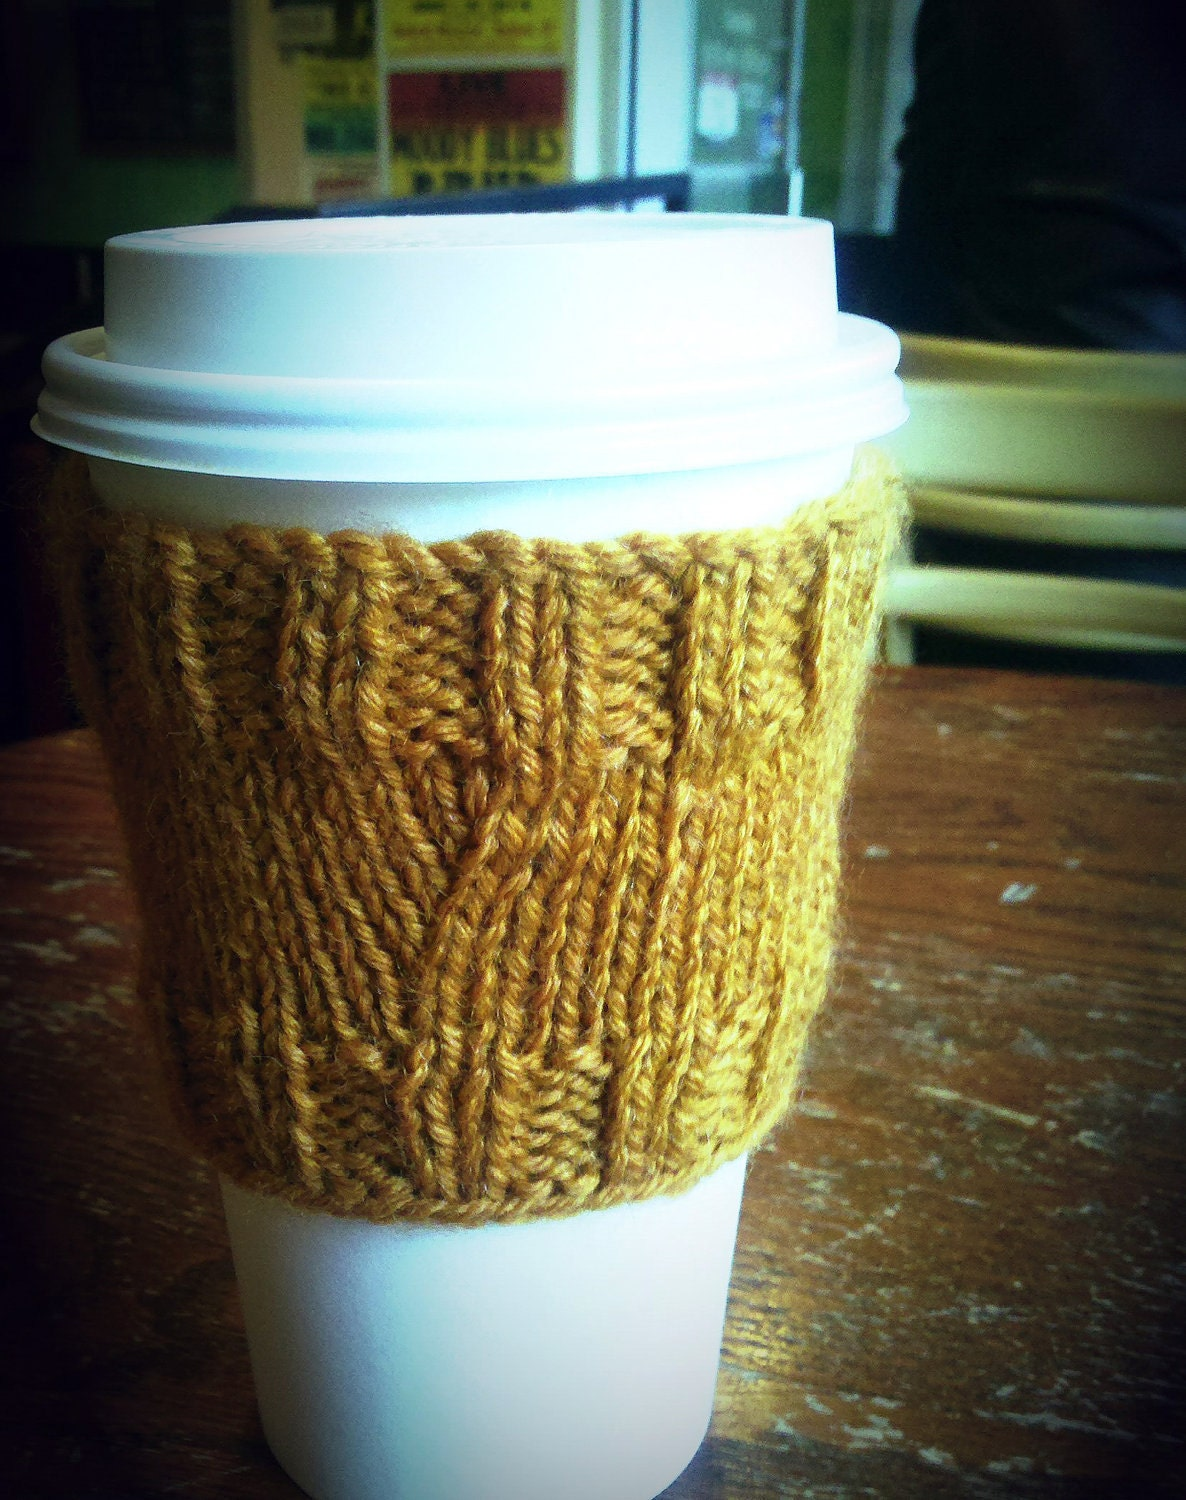 Coffee Cozy Knit Pattern : Items similar to Coffee Cover Up Cozy Sleeve Knit Pattern ...